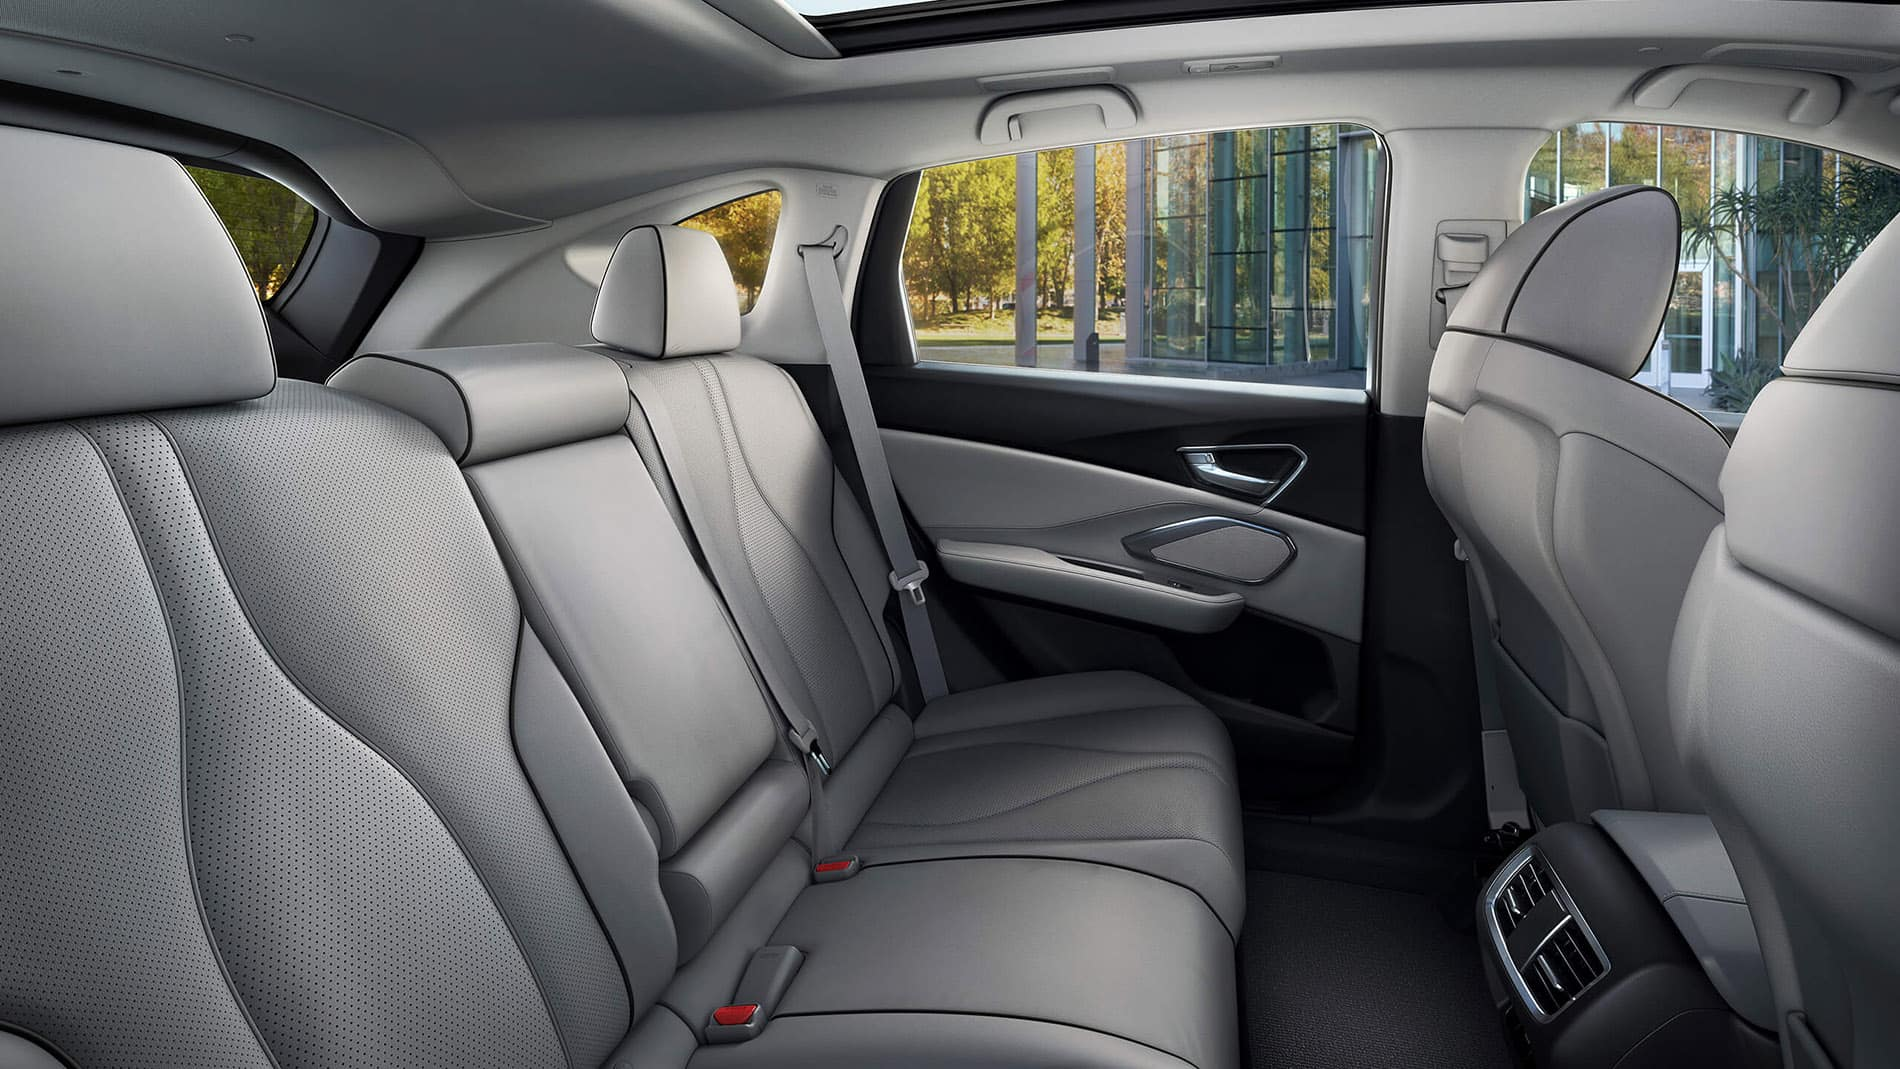 2019 Acura RDX rear seating